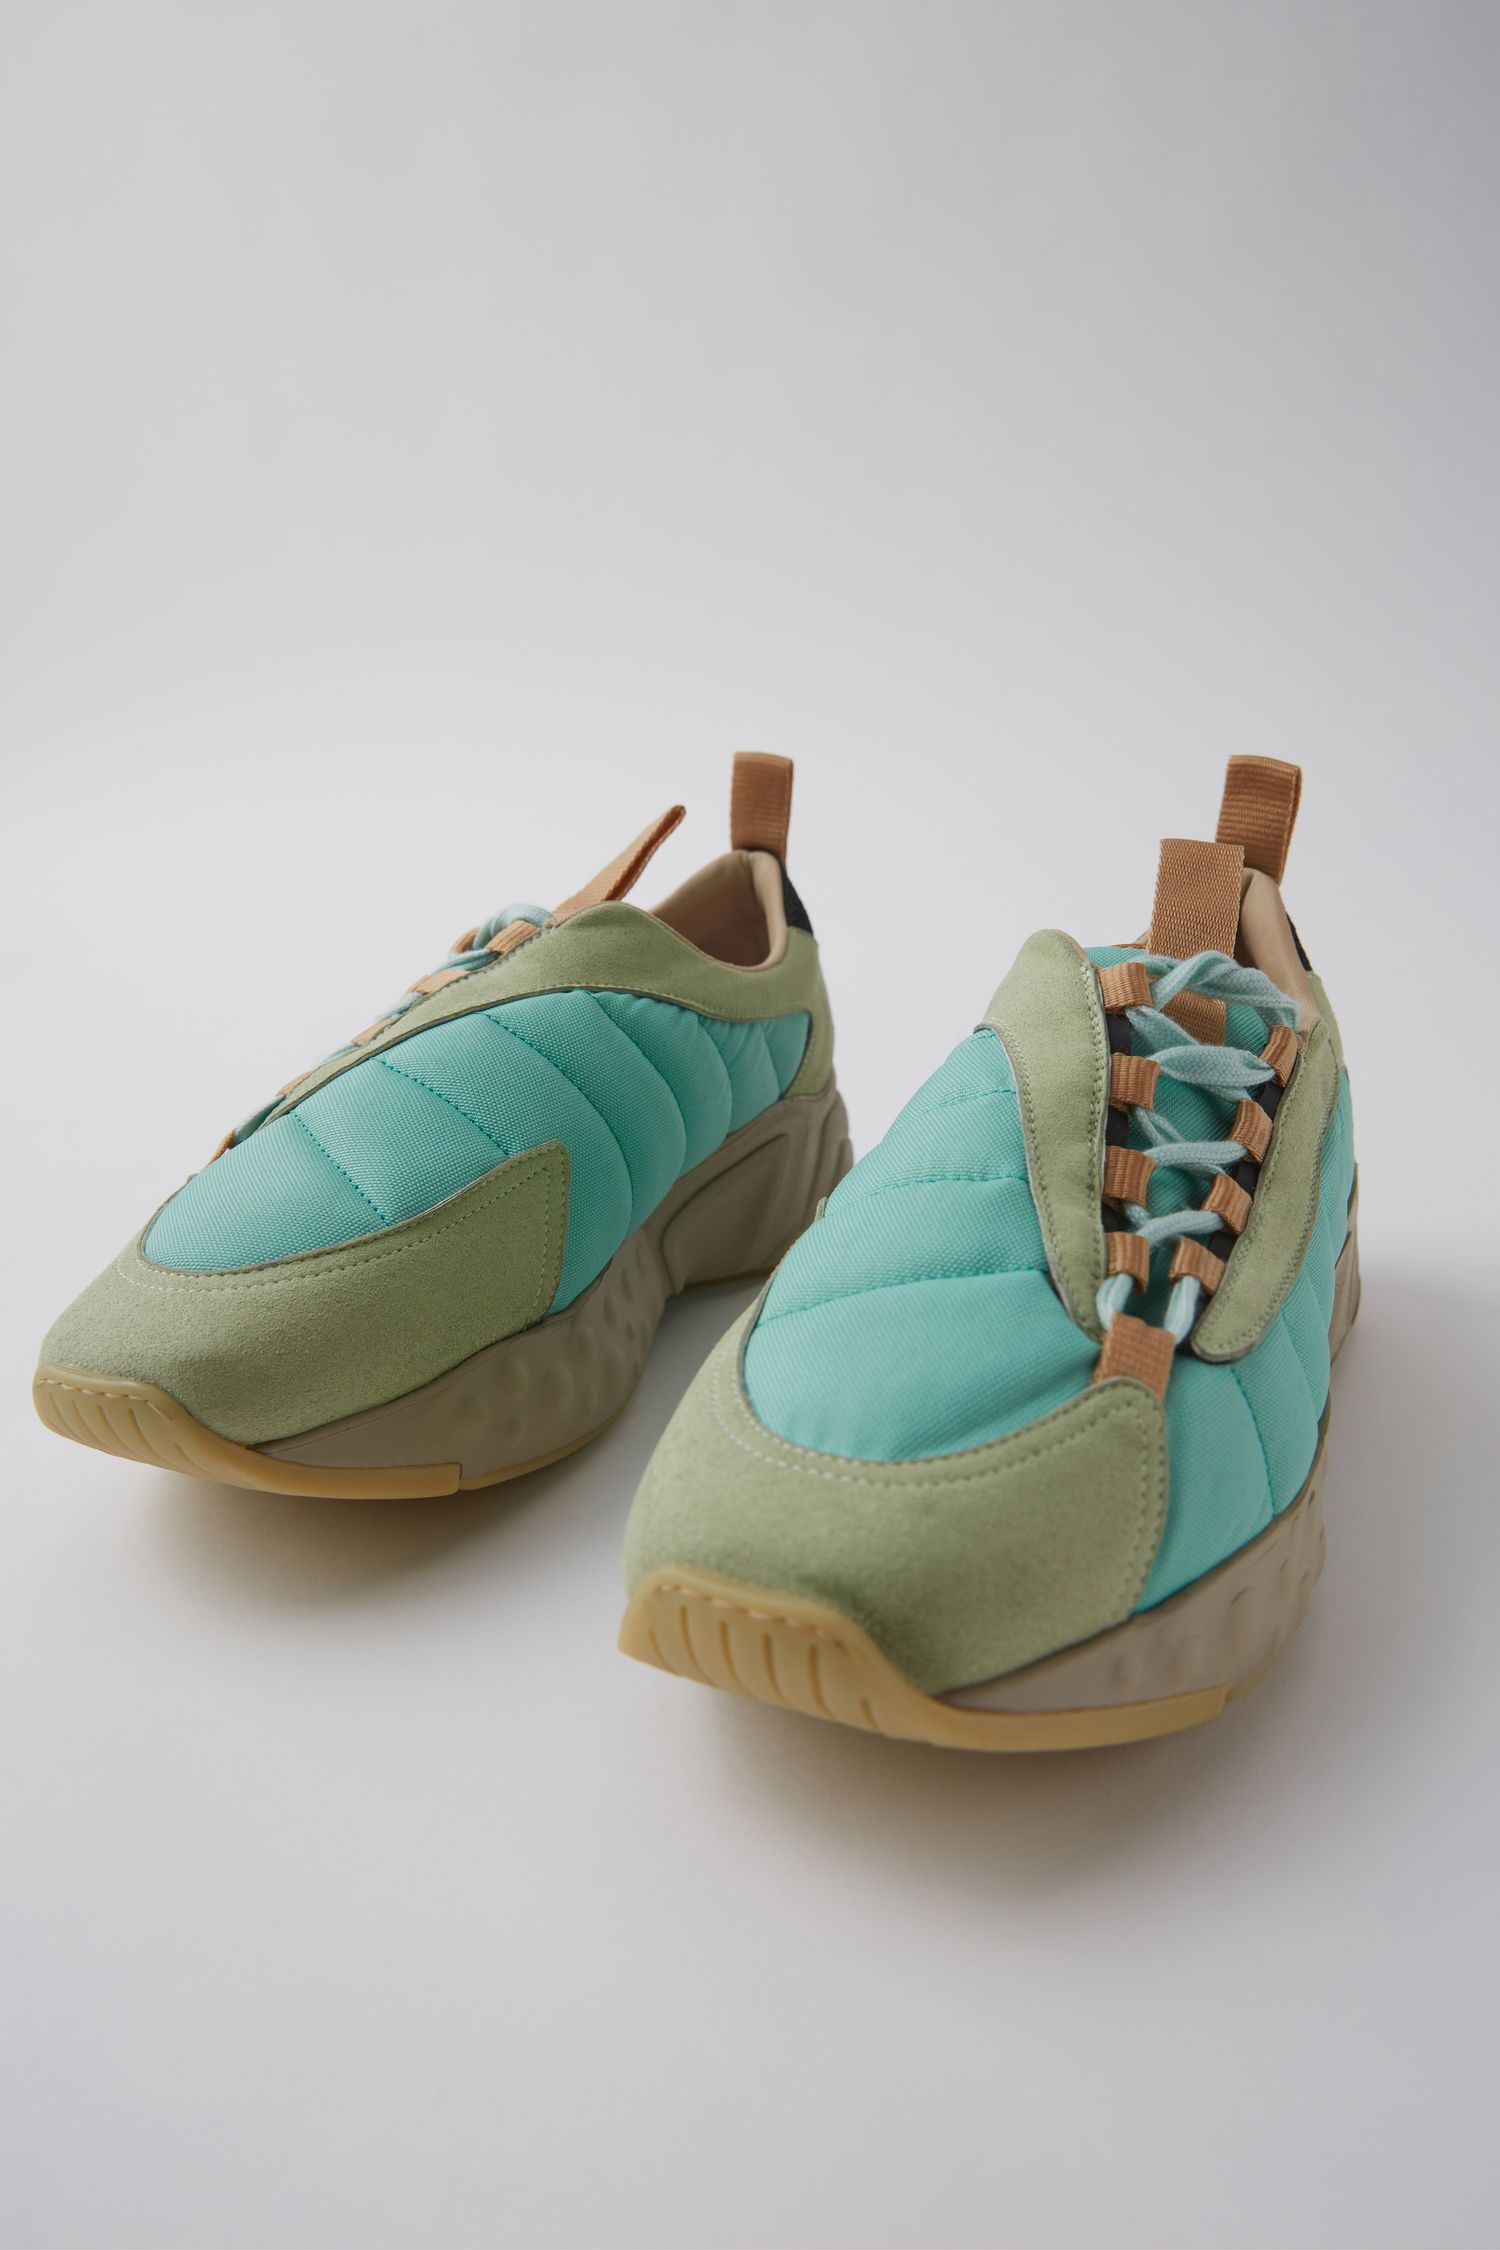 618fa4f277ca Acne Studios Sofiane Mint Green 1500x 003 Chaussure, Sandales, Chaussures  Chaussures De Sport,